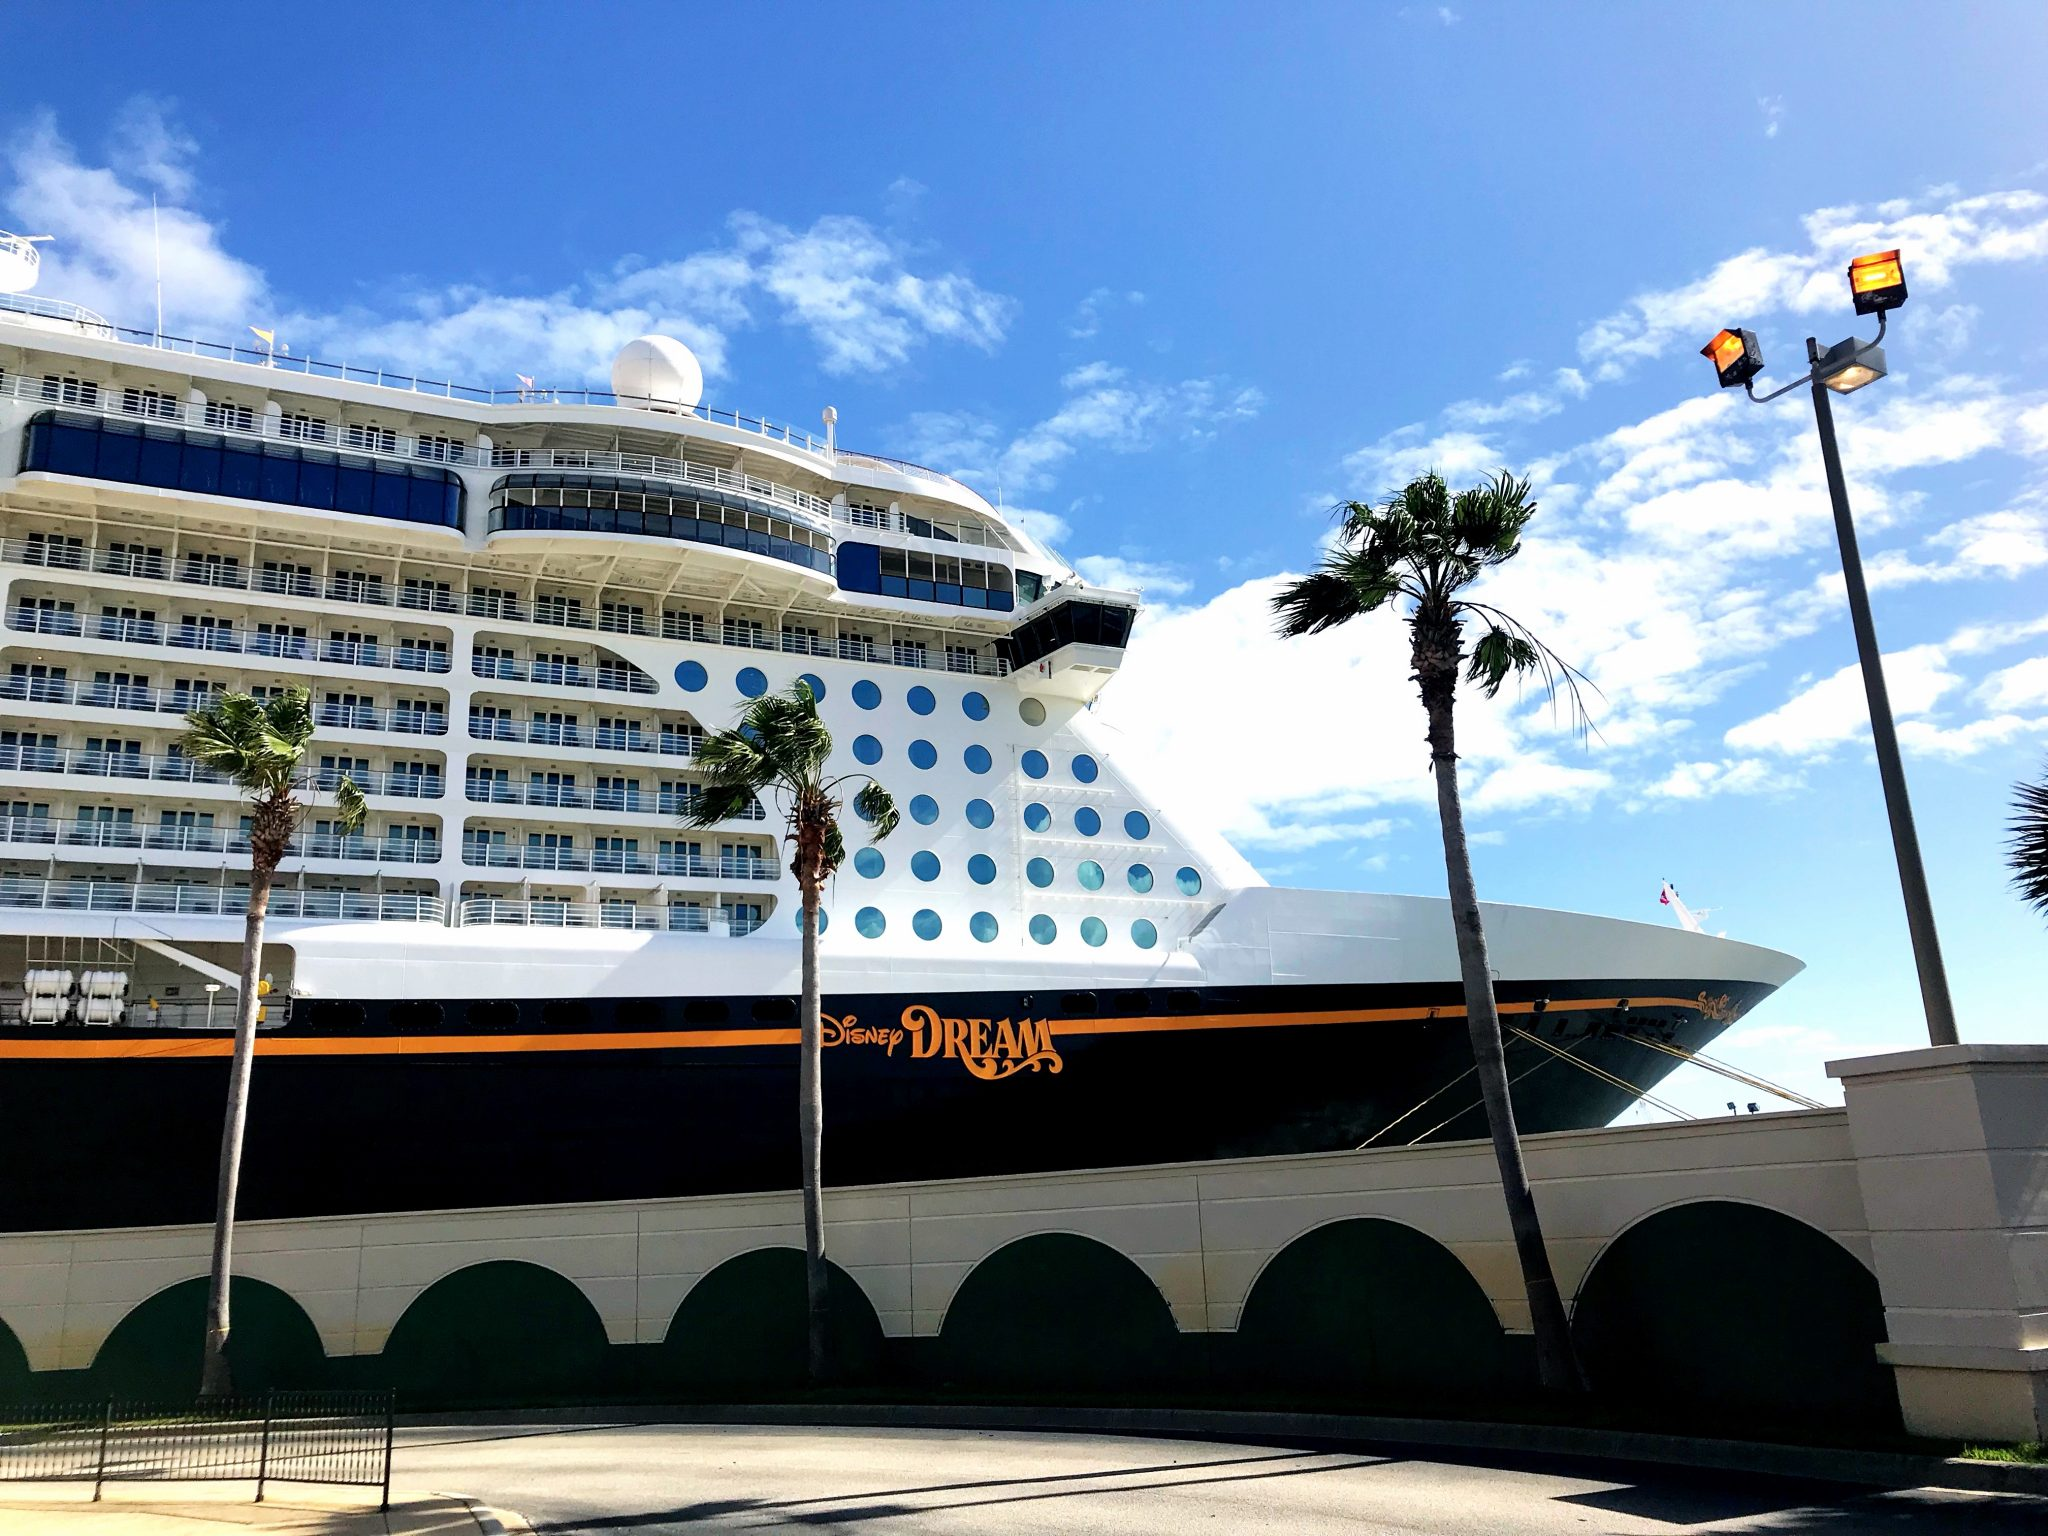 Disney Dream cruise ship docked at Port Canaveral